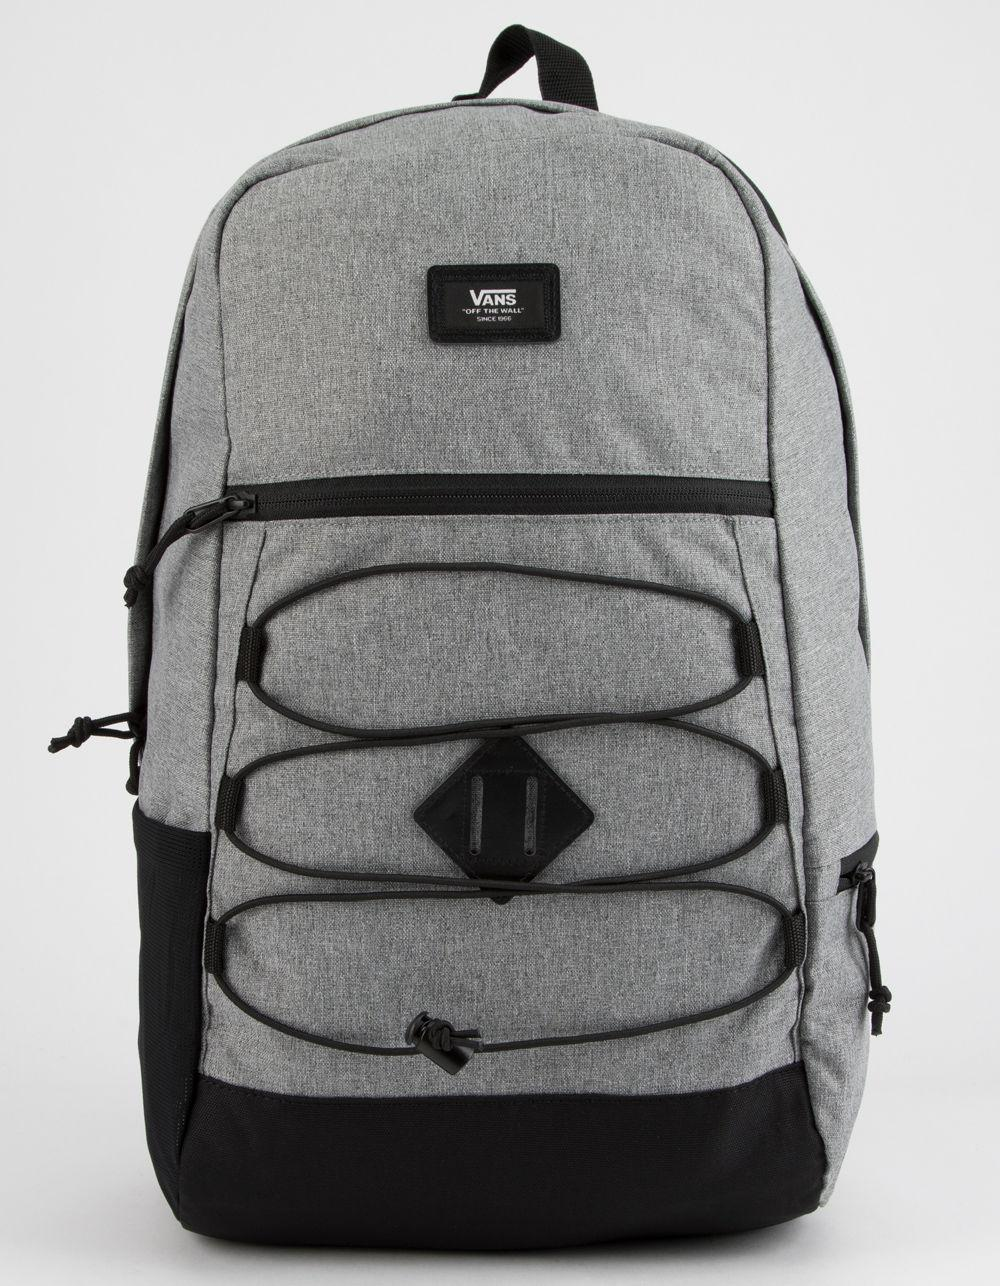 ab882653ca2c Lyst - Vans Snag Plus Backpack - in Gray for Men - Save 42%